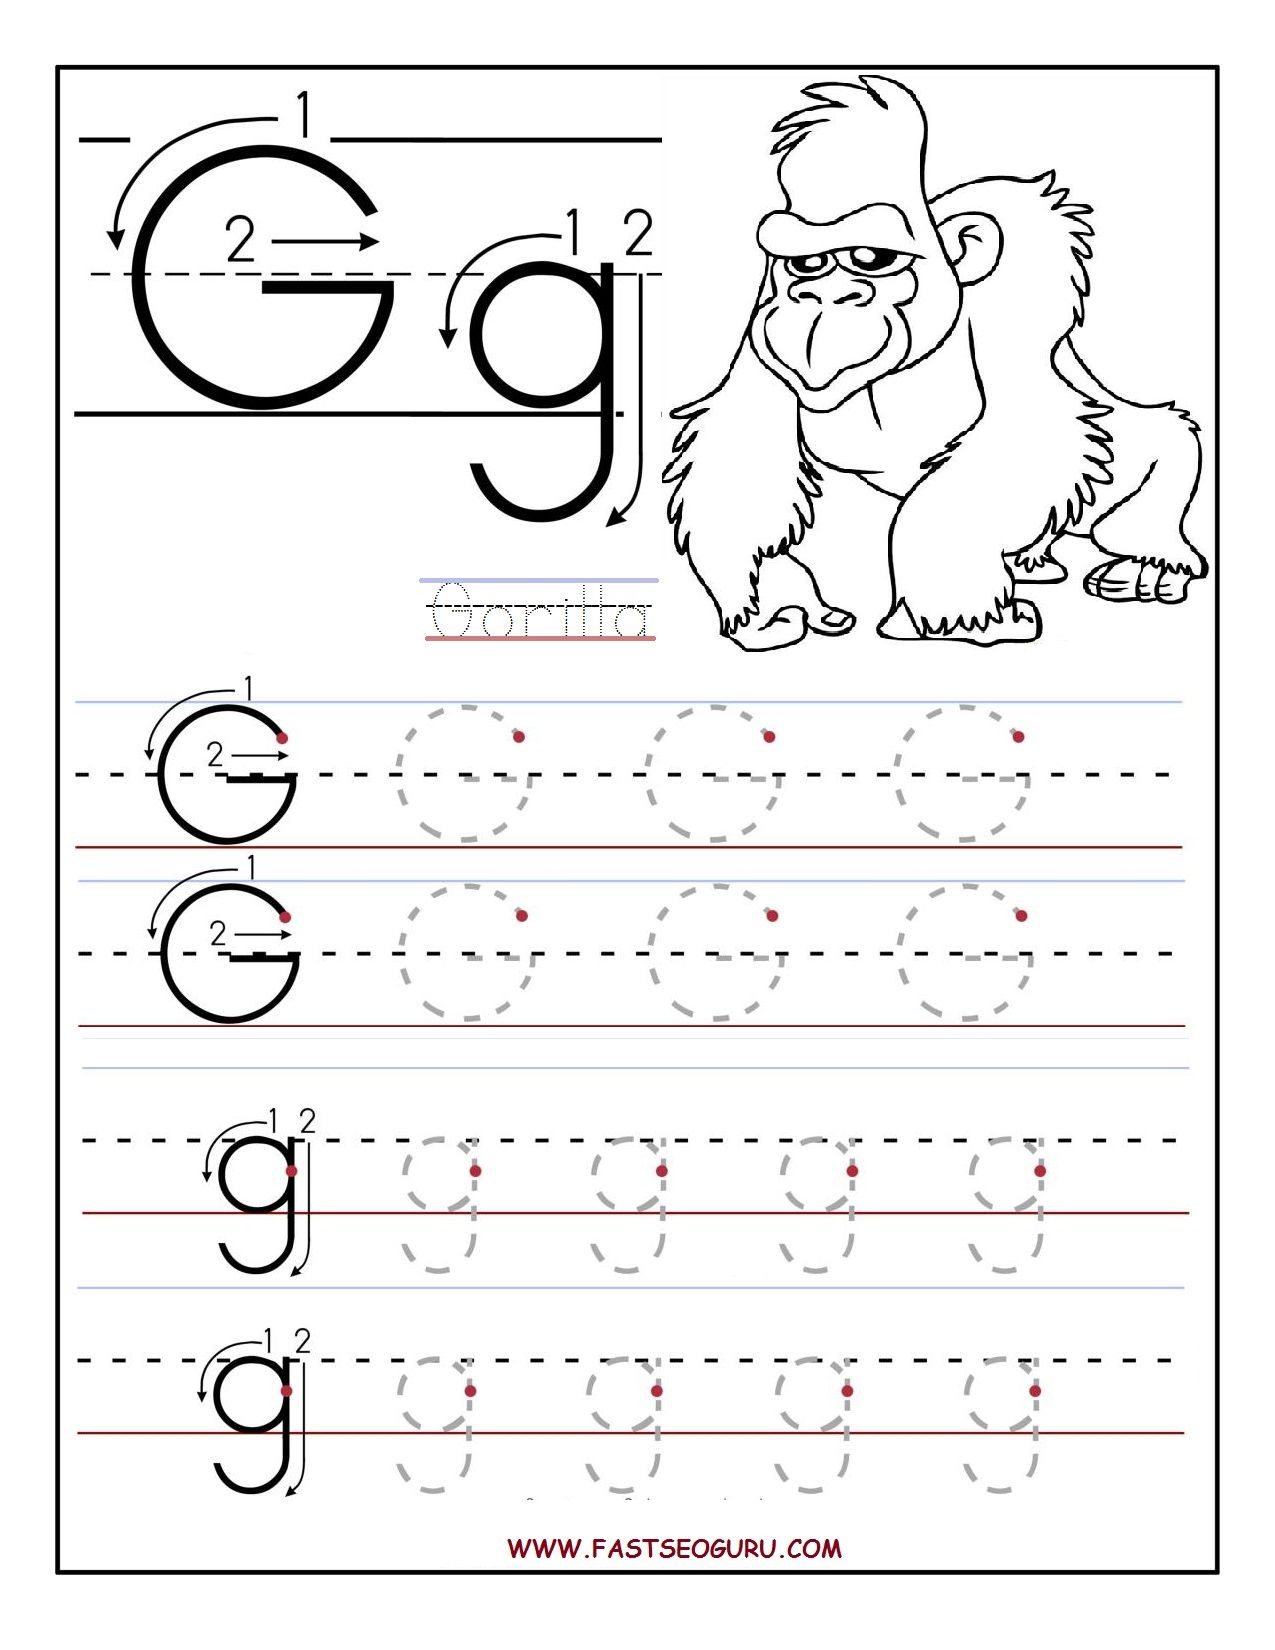 Worksheets For Preschoolers | Printable Letter G Tracing throughout Alphabet G Worksheets